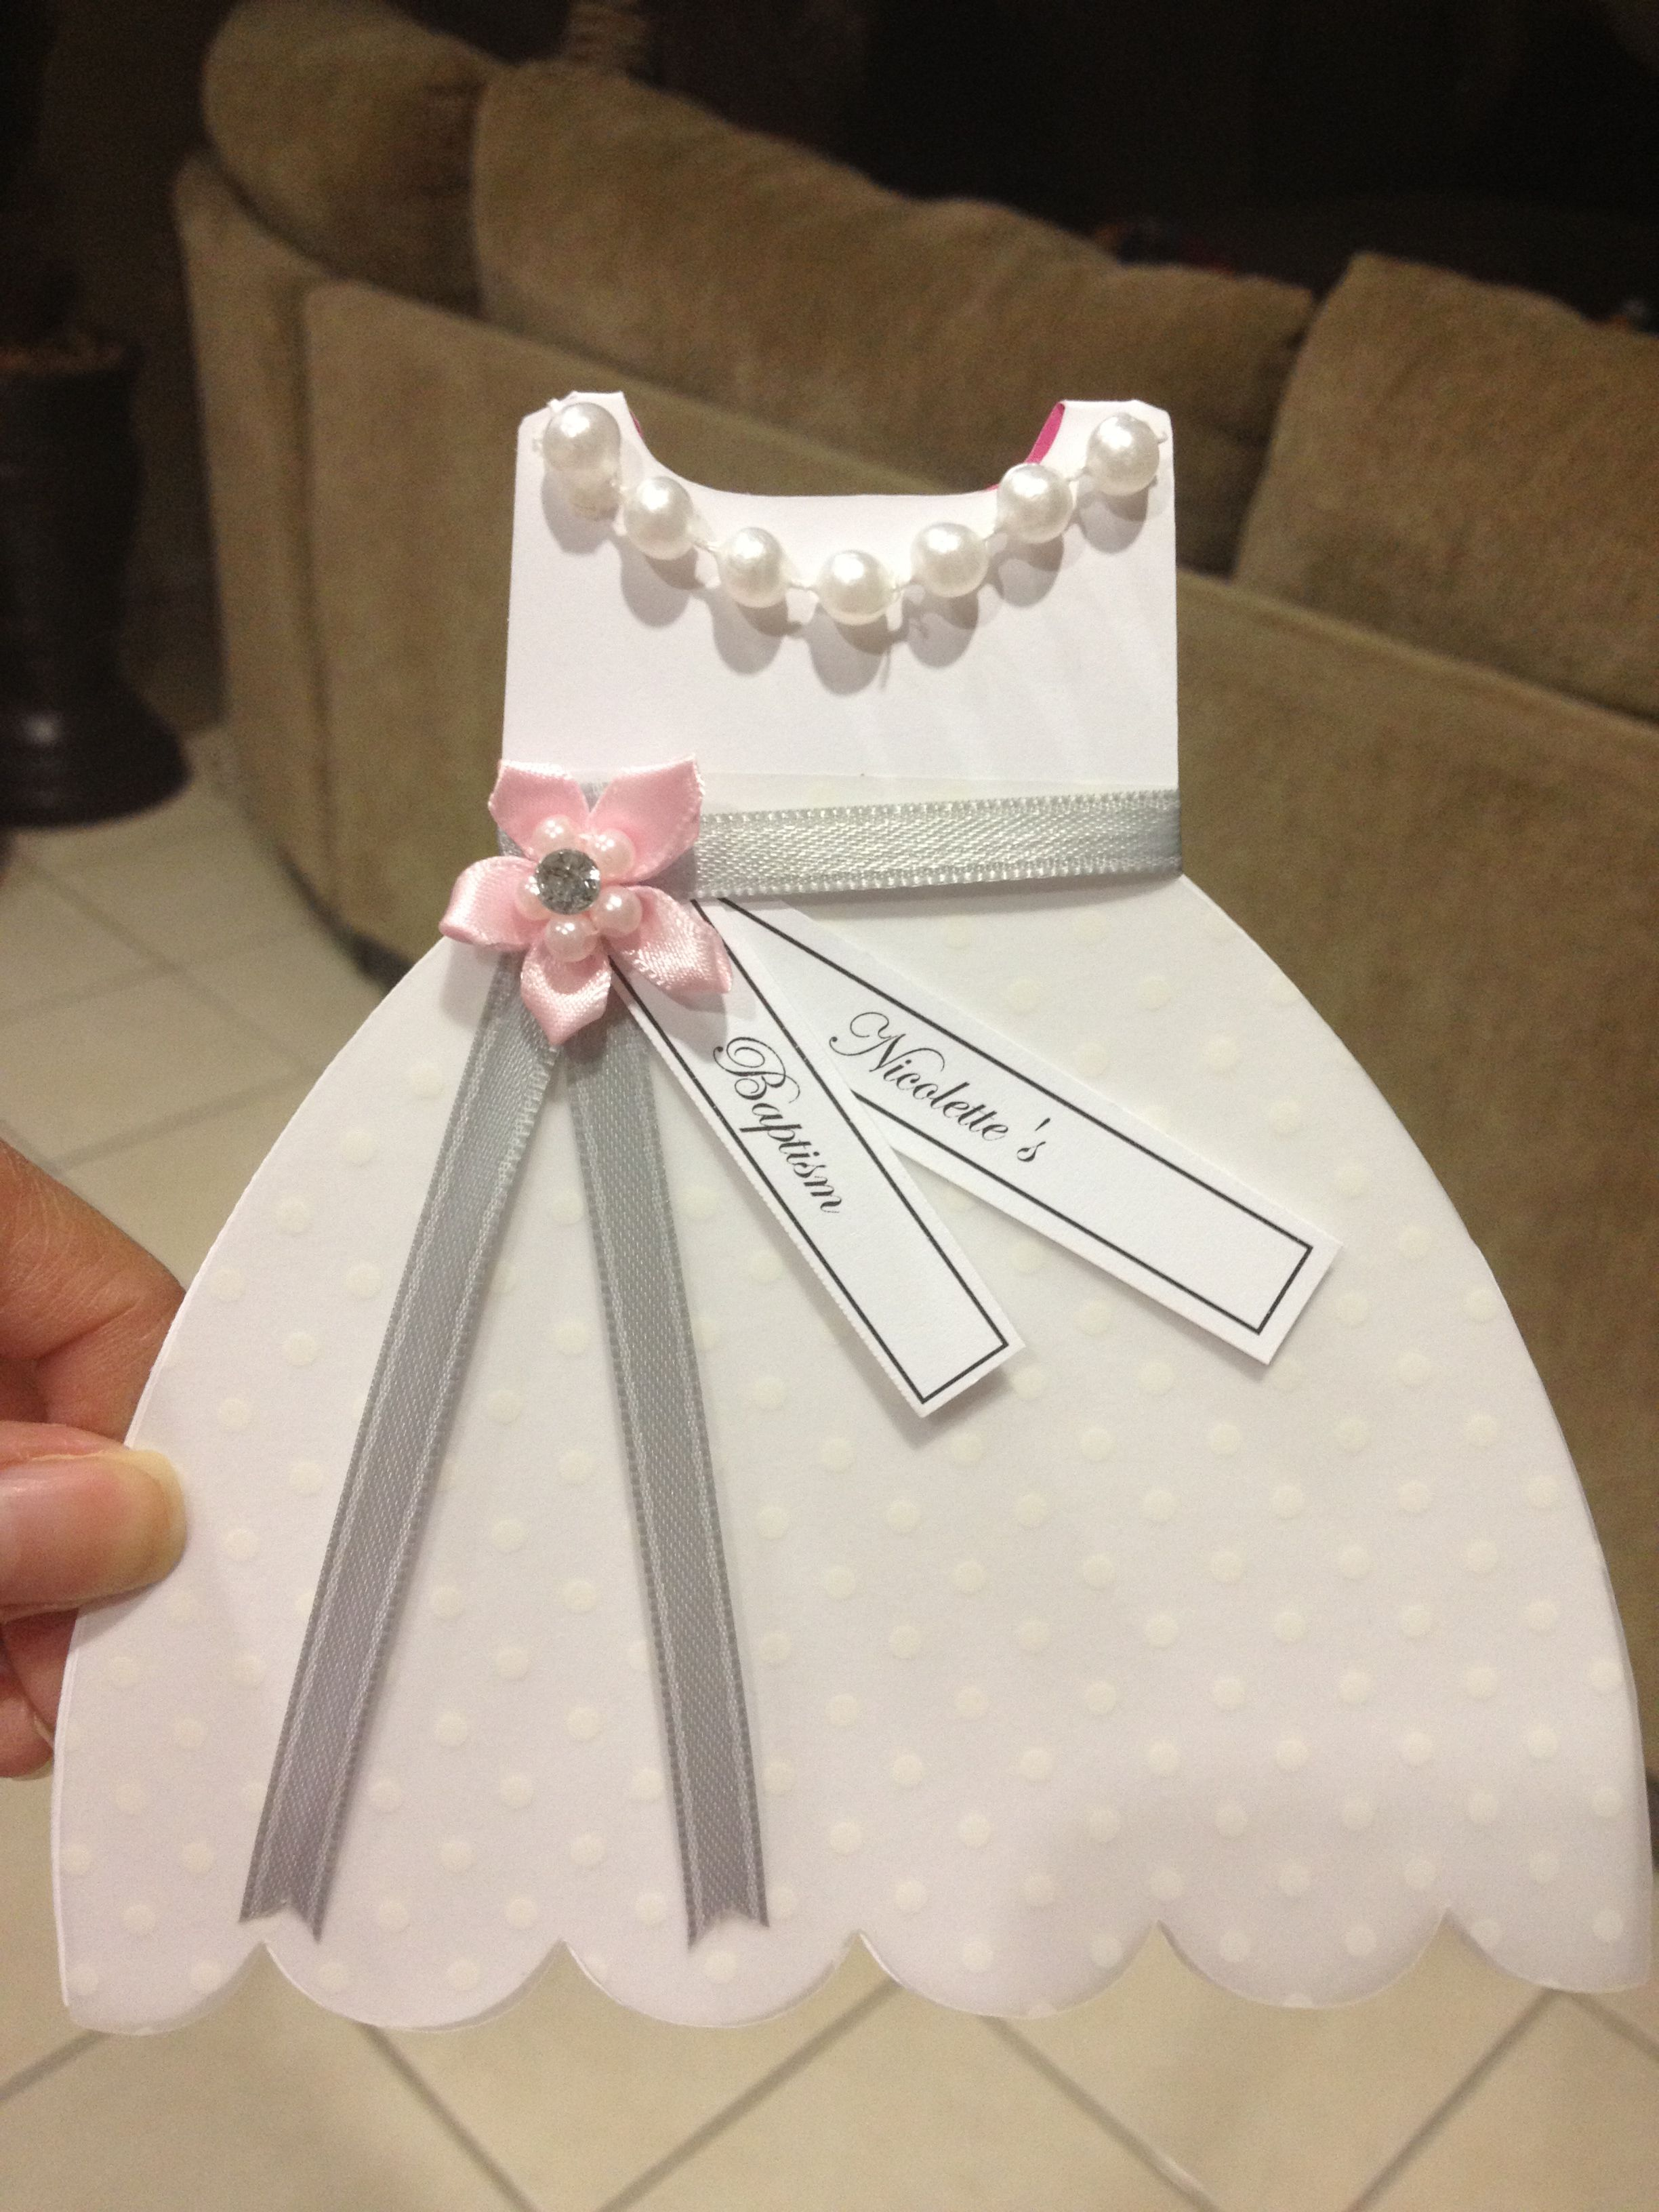 Baptism Christening Gown Dress Cutout Invitation Inquire By